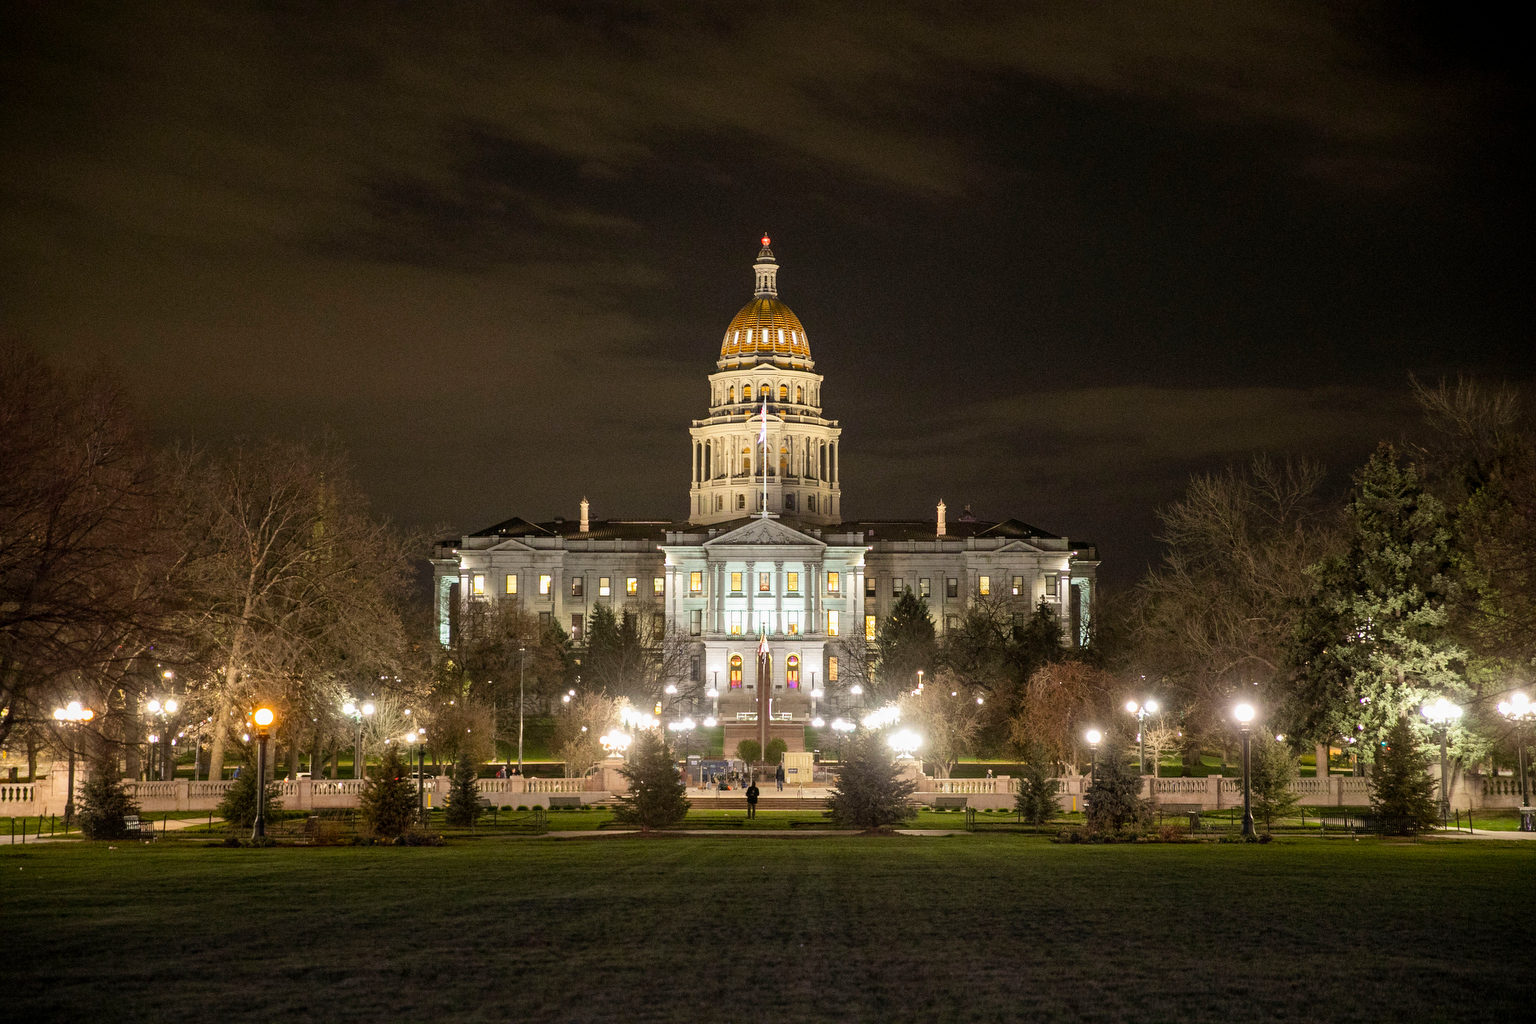 Colorado state Capitol building at night